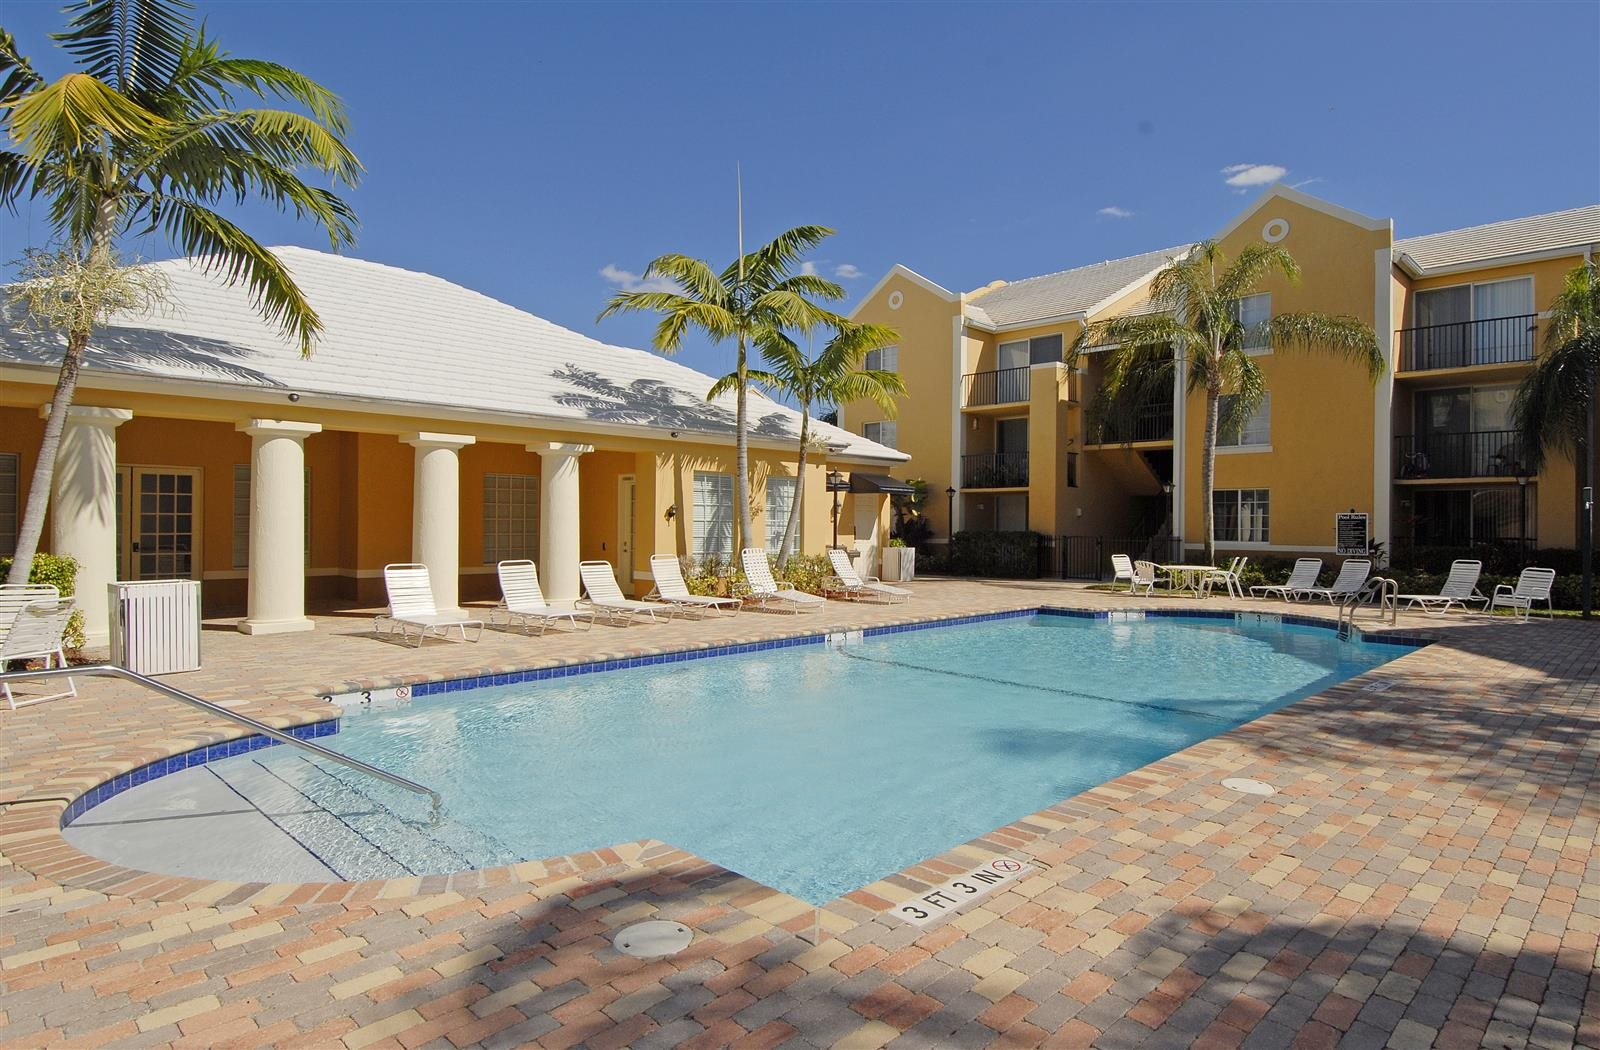 Poolside Cabanas at The Winston, Pembroke Pines, FL, 33025